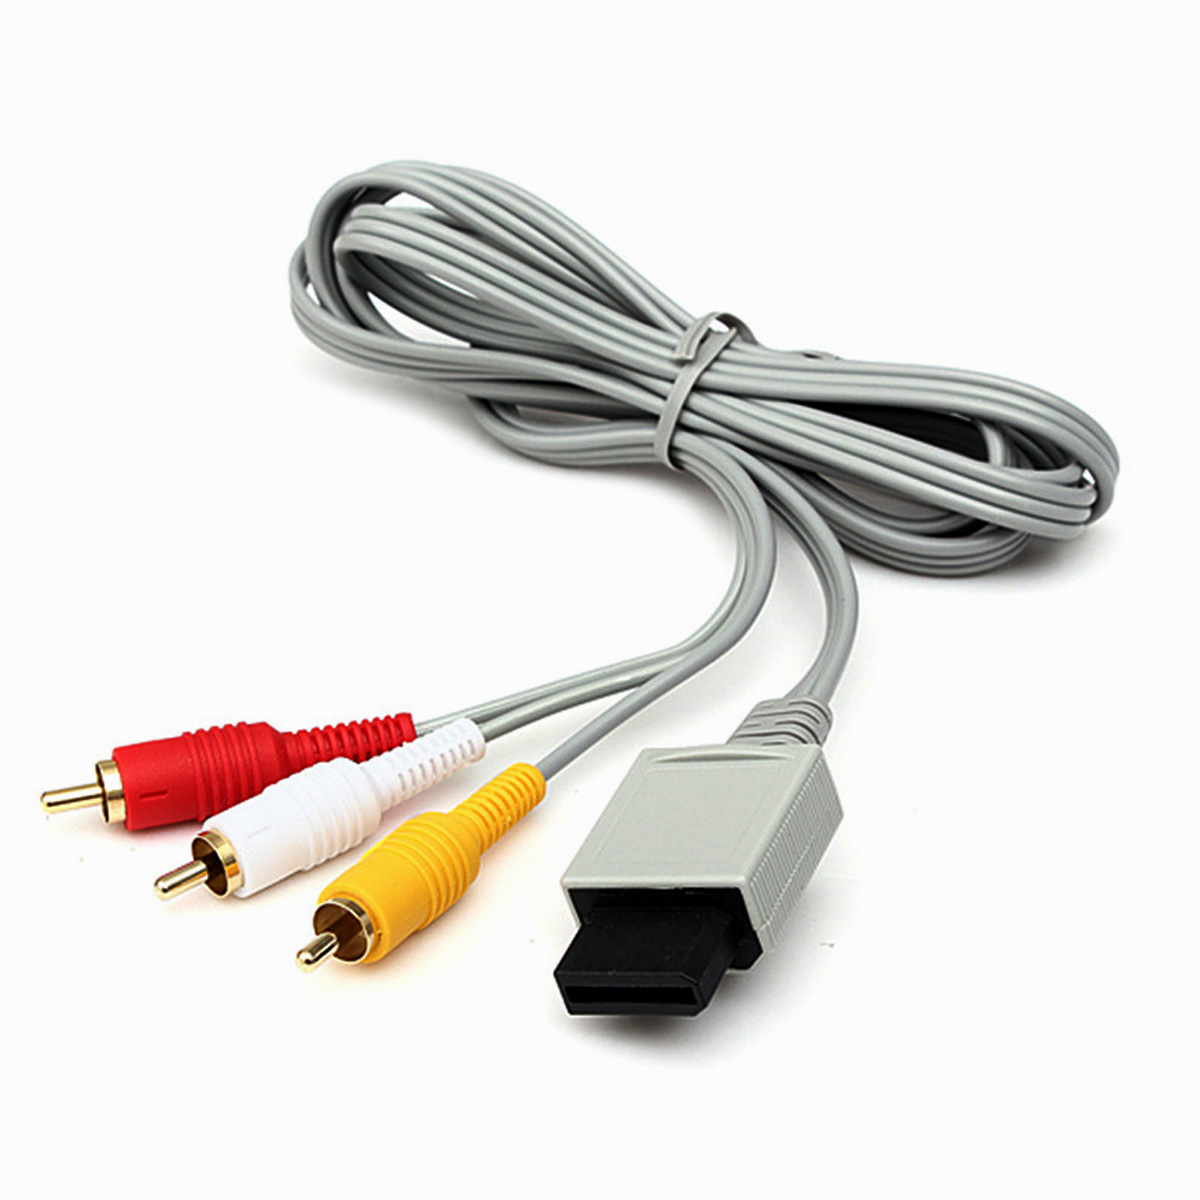 6ft 3-RCA Composite Audio Video AV Cable Cord for Nintendo Wii Console